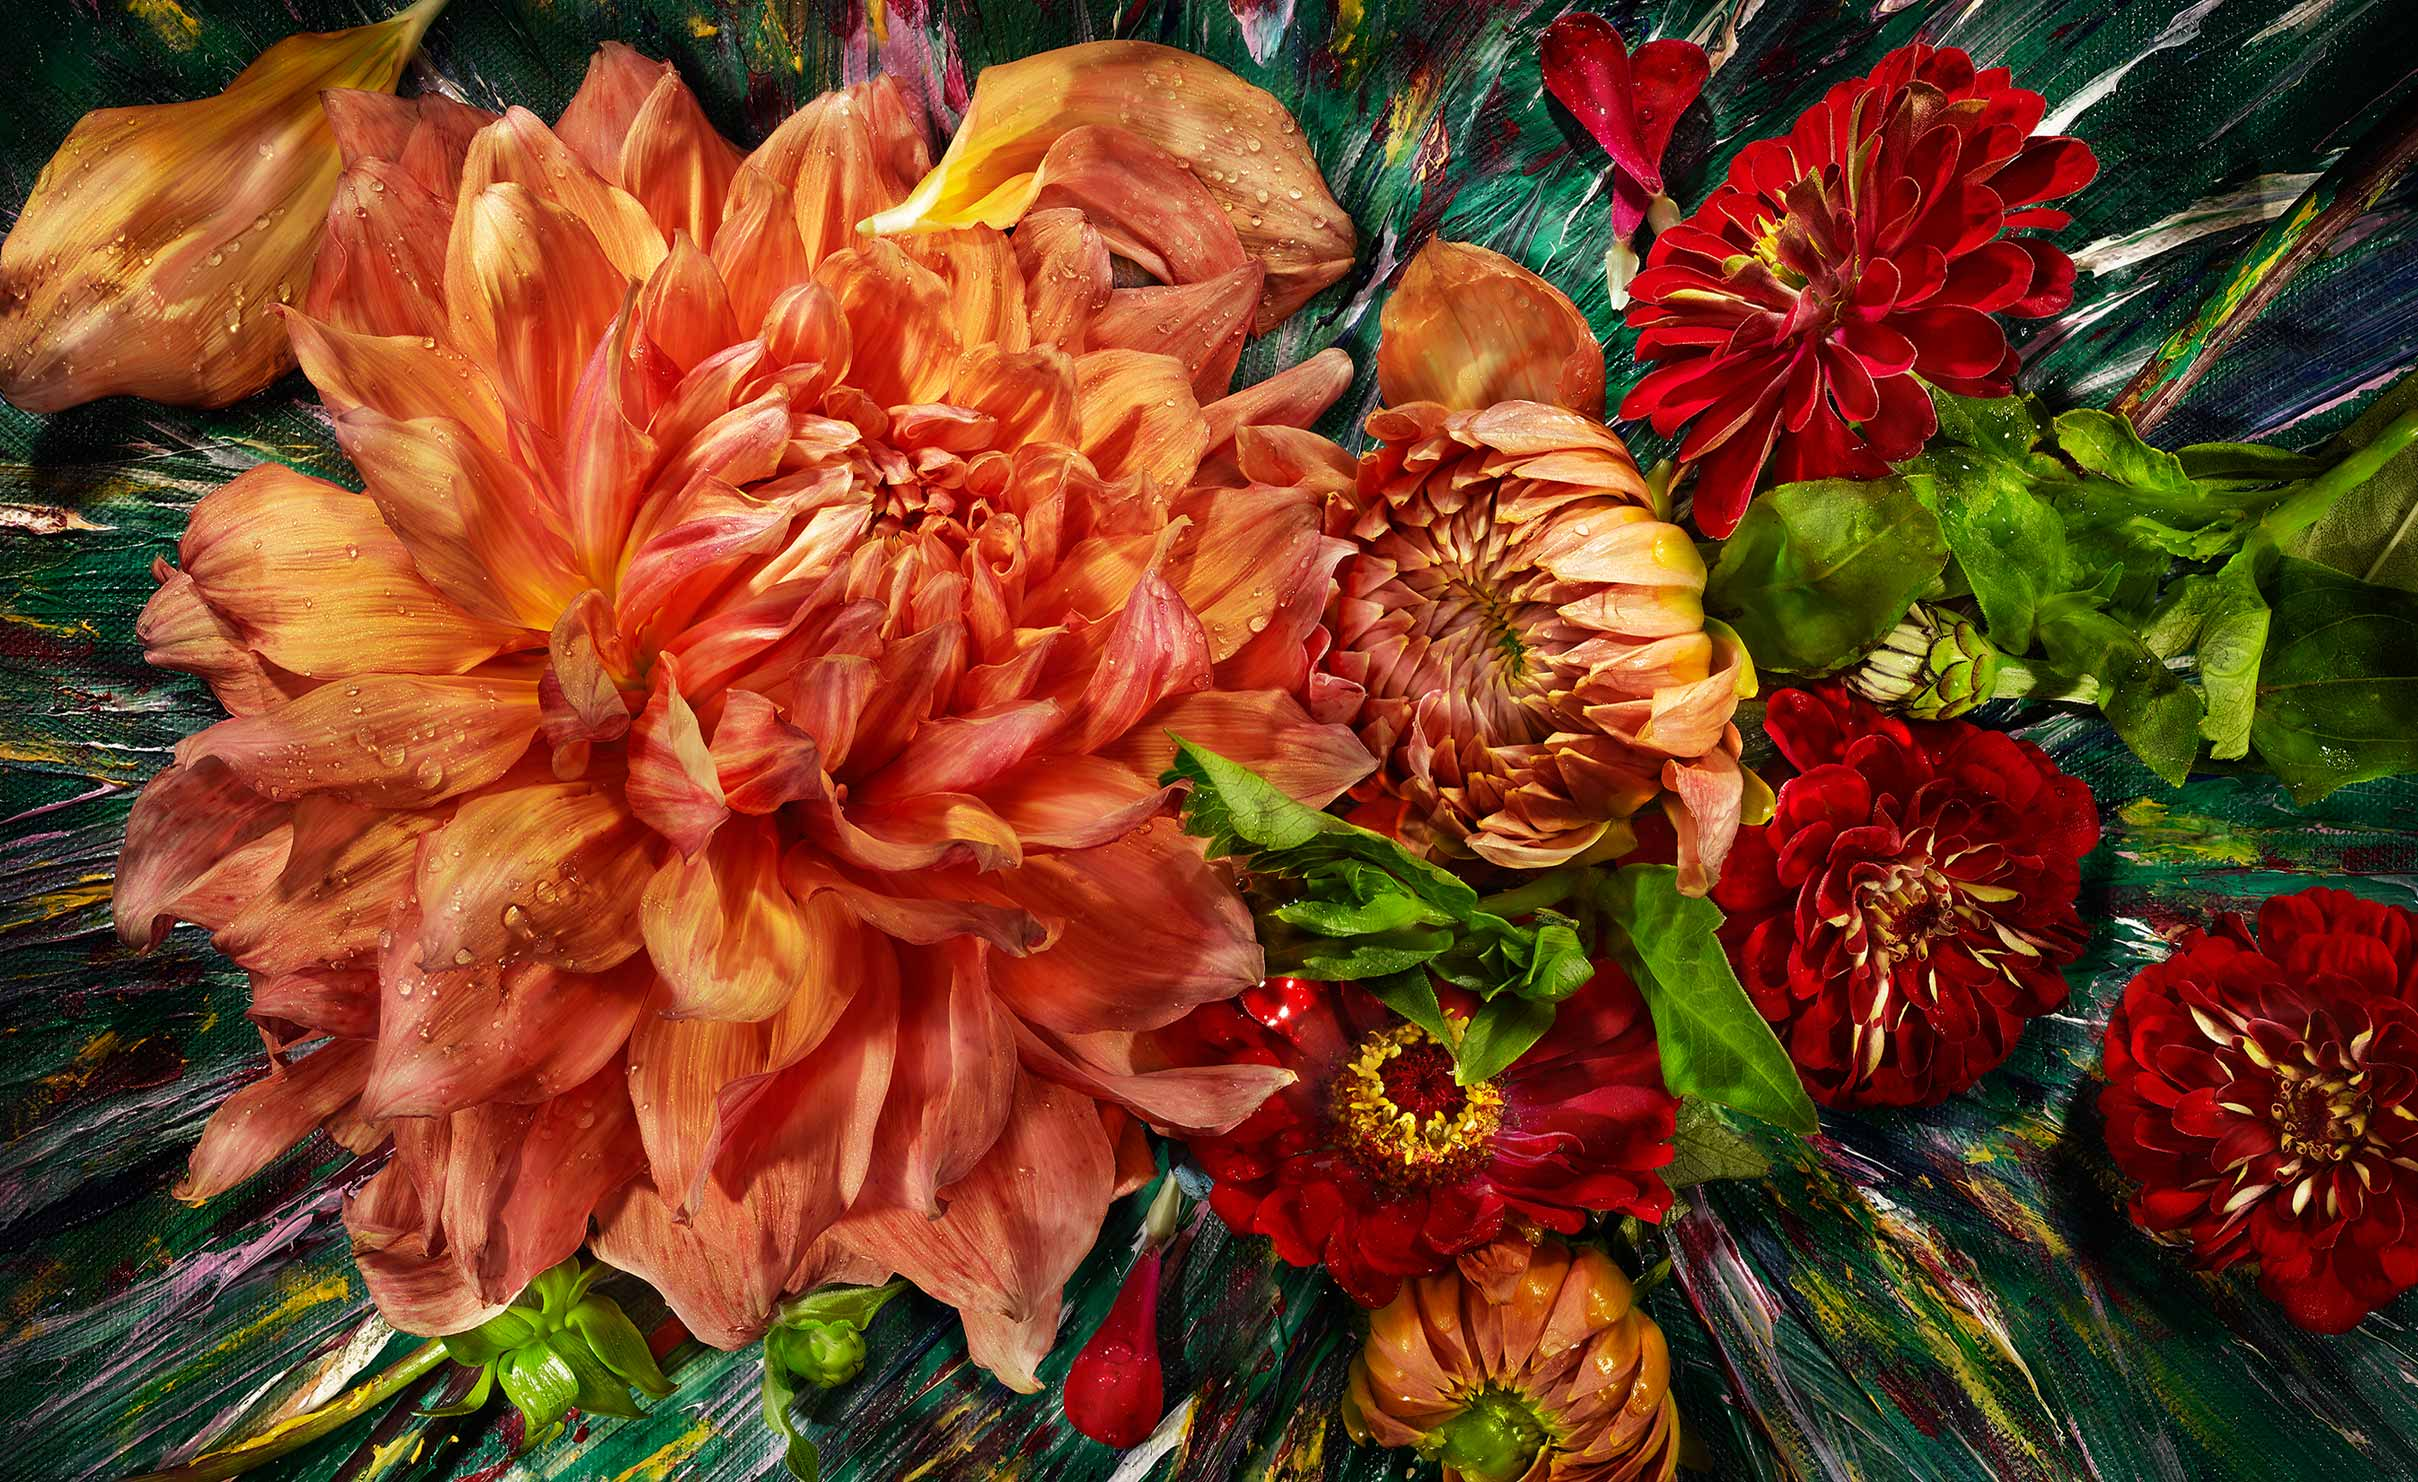 edible  painterly orange and red Dahlia and Zinnias  shot on a painted background